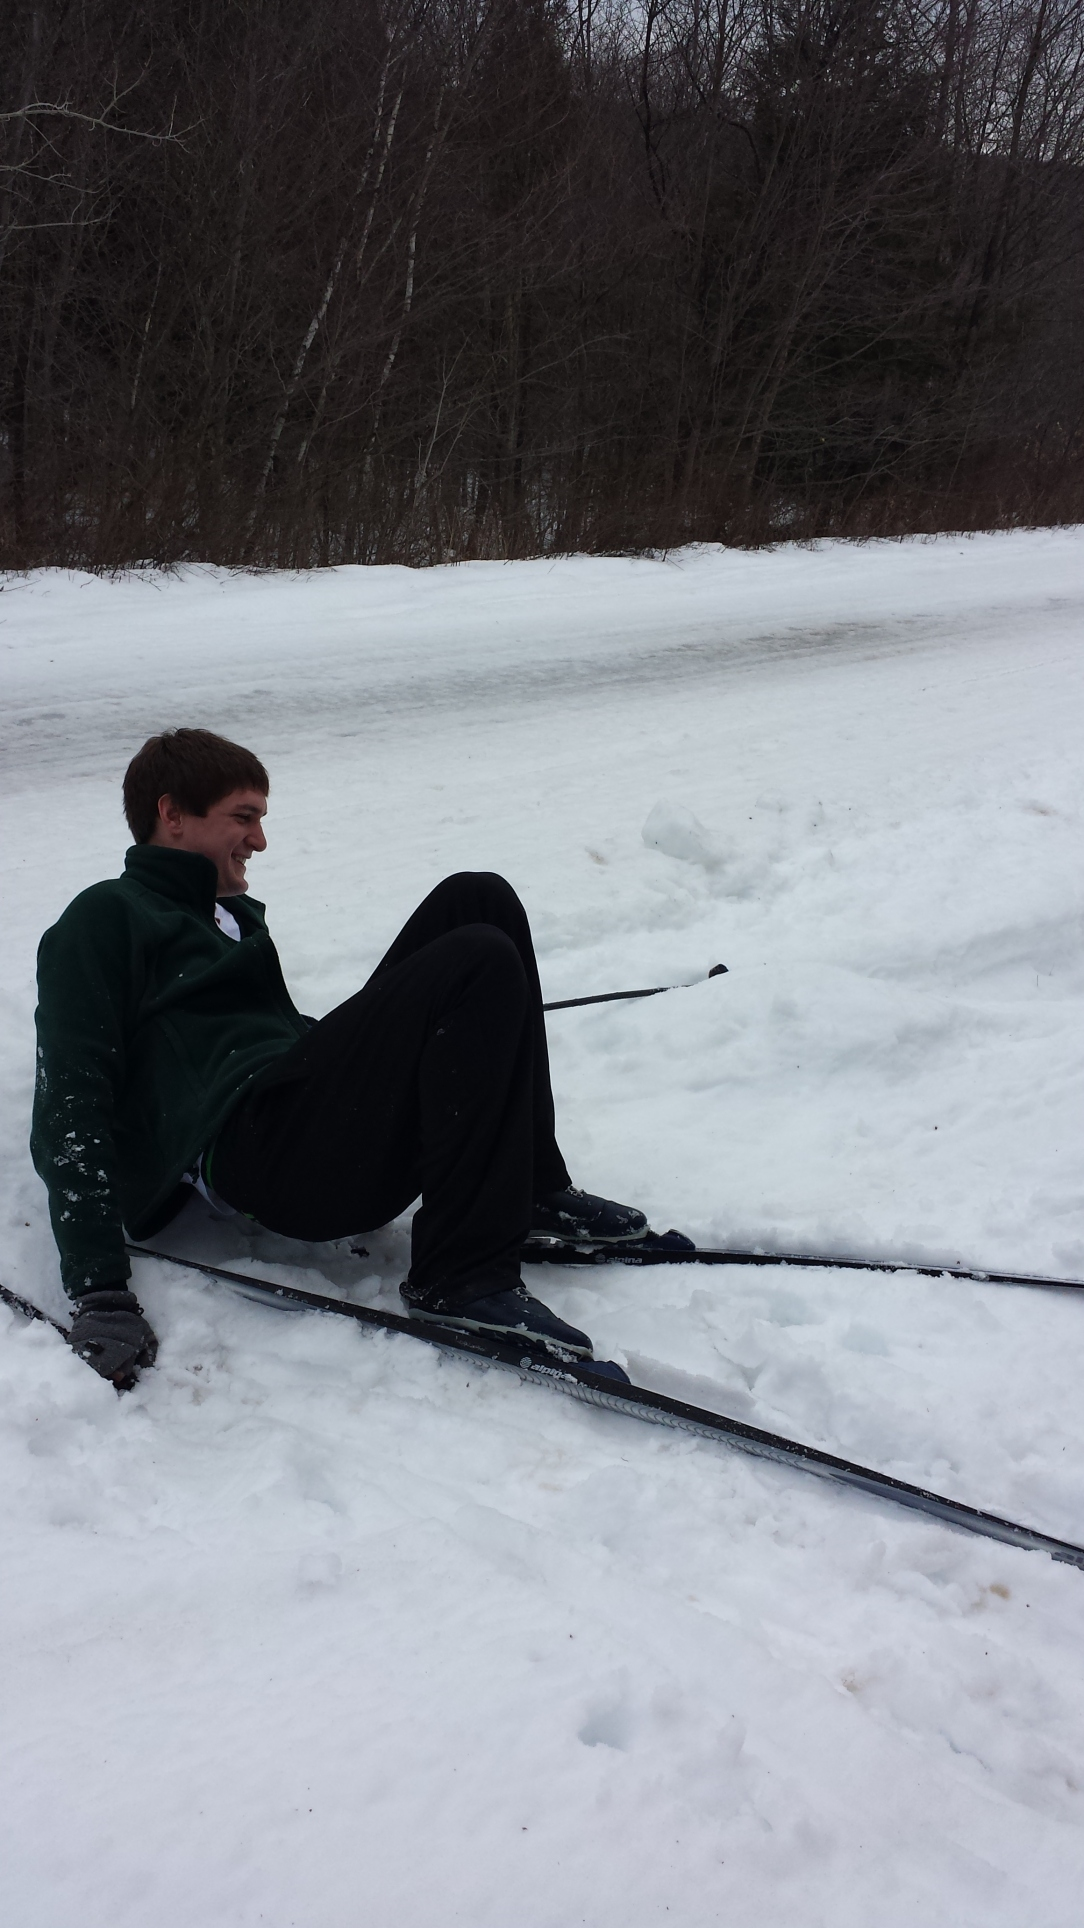 This is my cousin Mikey who I was XC skiing with last weekend. He makes fun of me for blogging. I'm retaliating by posting a picture of him rolling around in the snow.